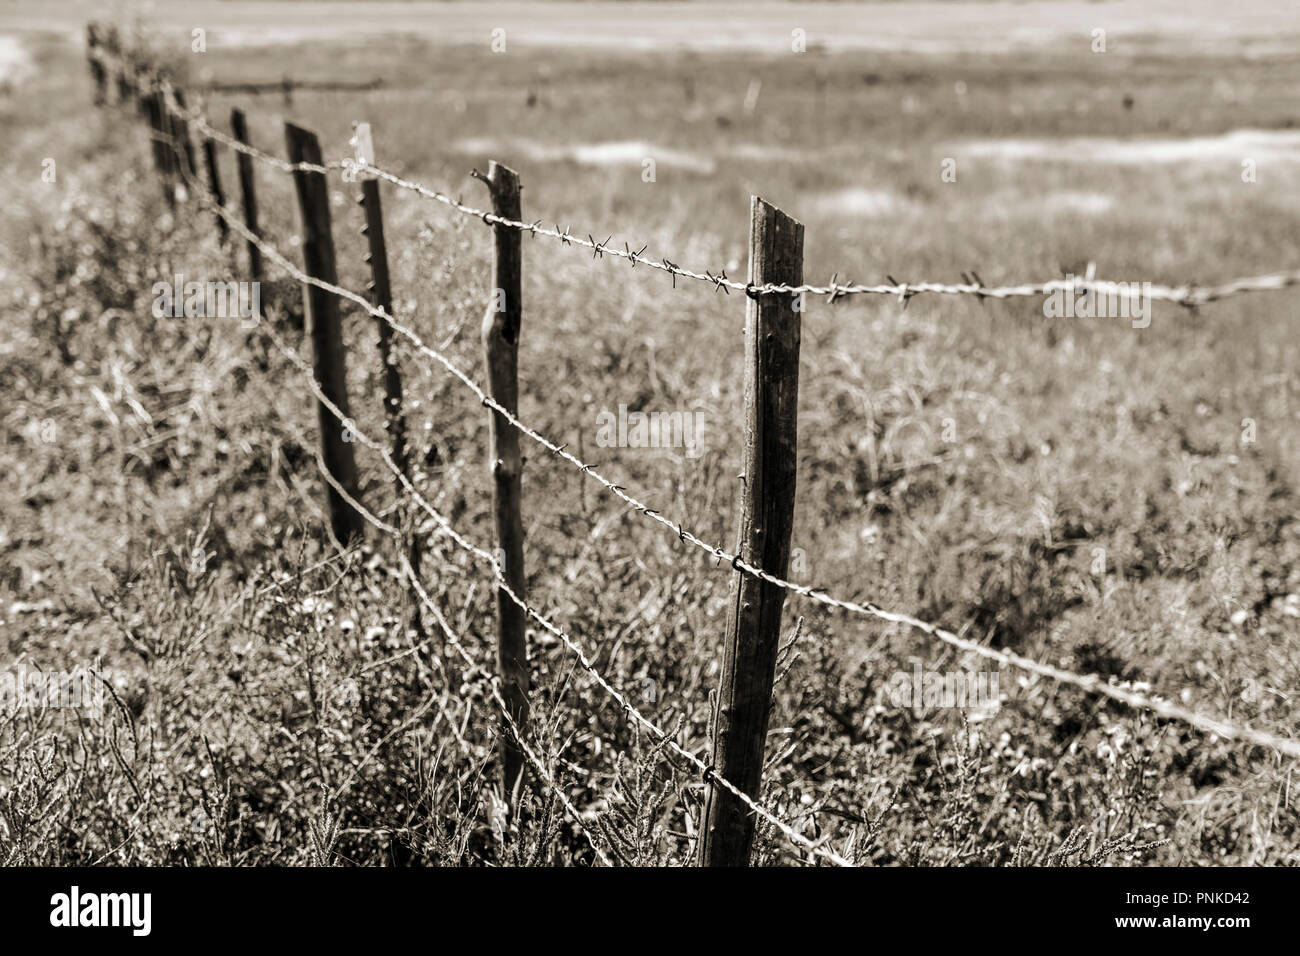 Black & white Sepia tone view of barbed wire fence; central Colorado; USA - Stock Image